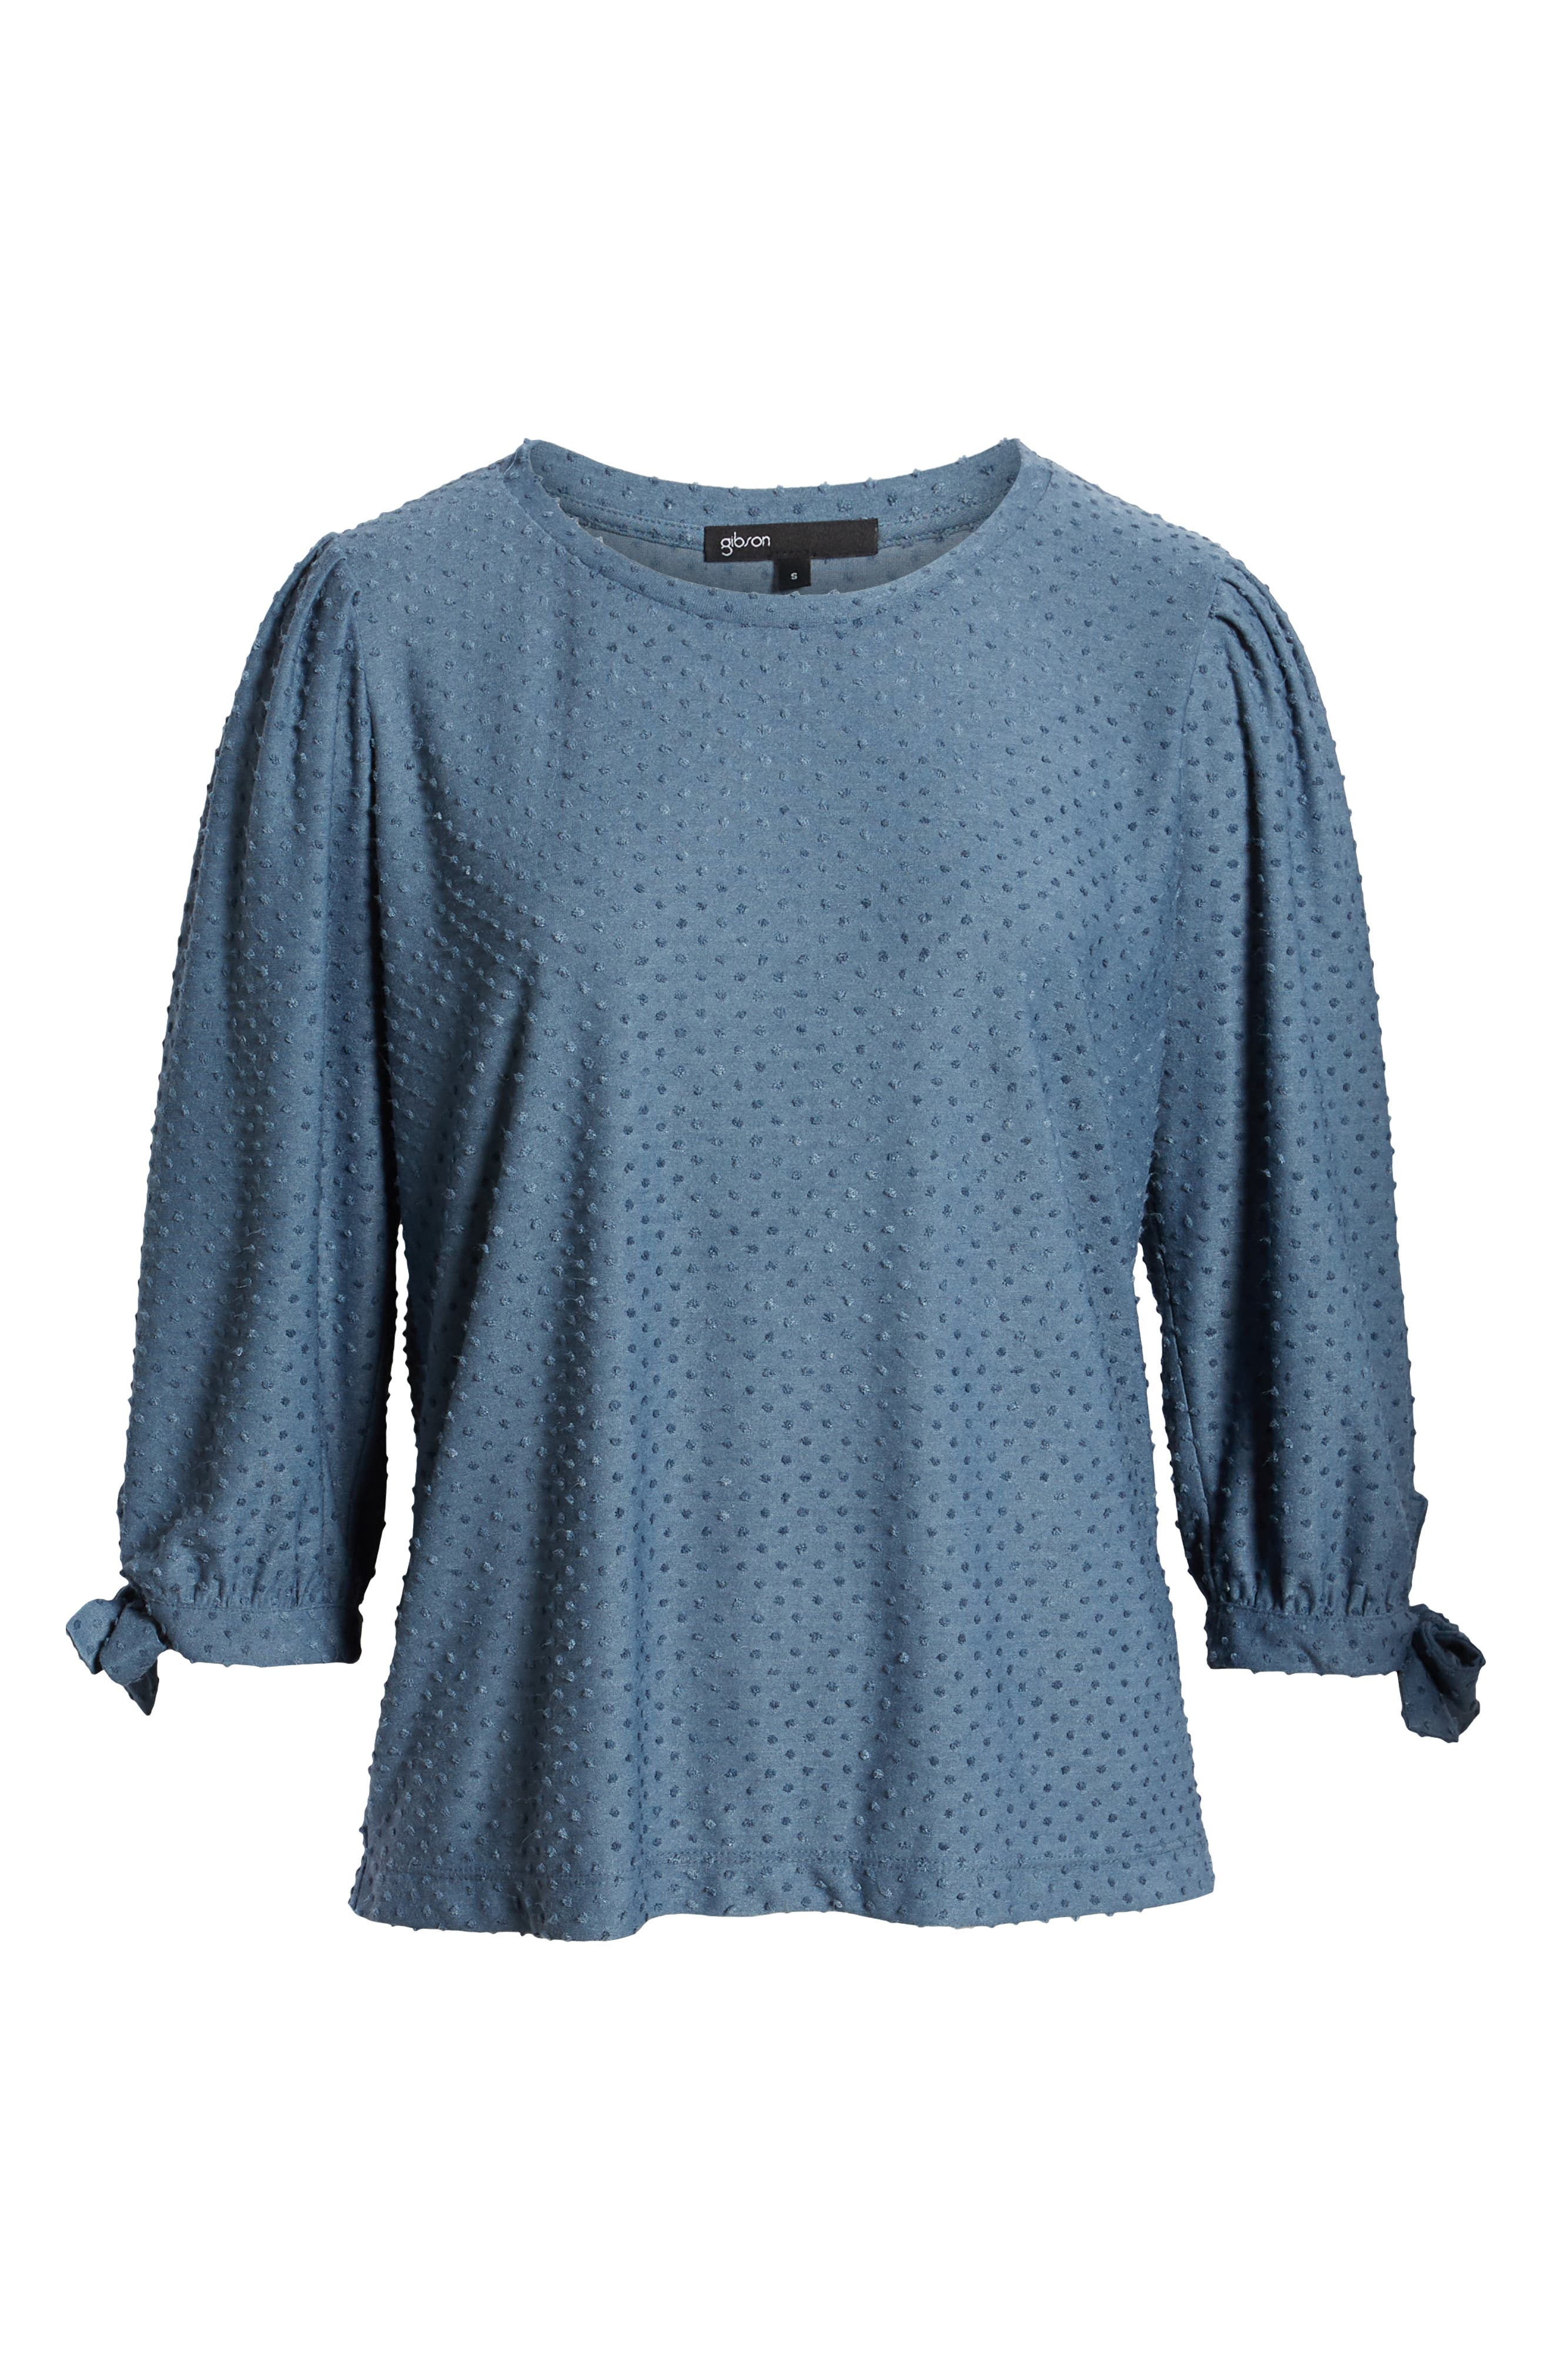 GIBSON,                             x International Women's Day Ruthie Clip Dot Tie Sleeve Blouse,                             Alternate thumbnail 6, color,                             DENIM